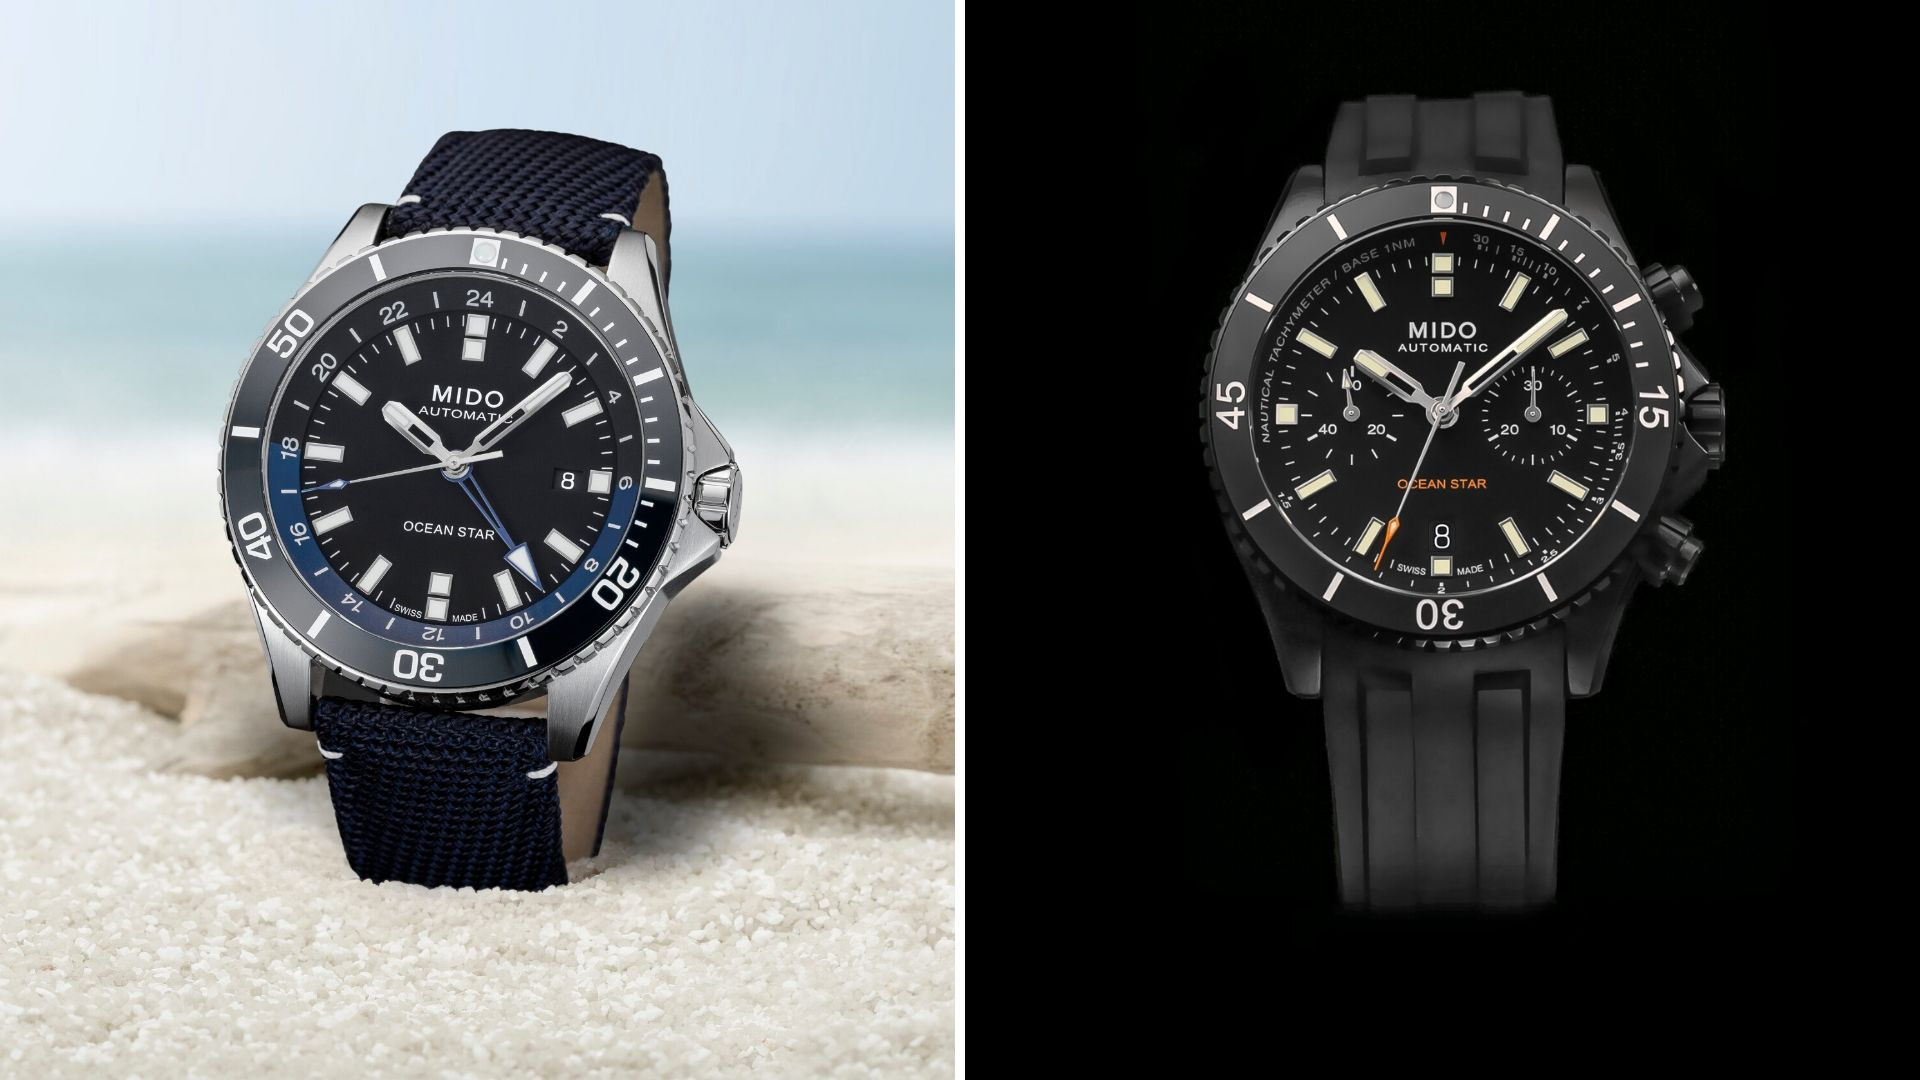 The Mido Ocean Star collection now has a GMT and Chronograph option